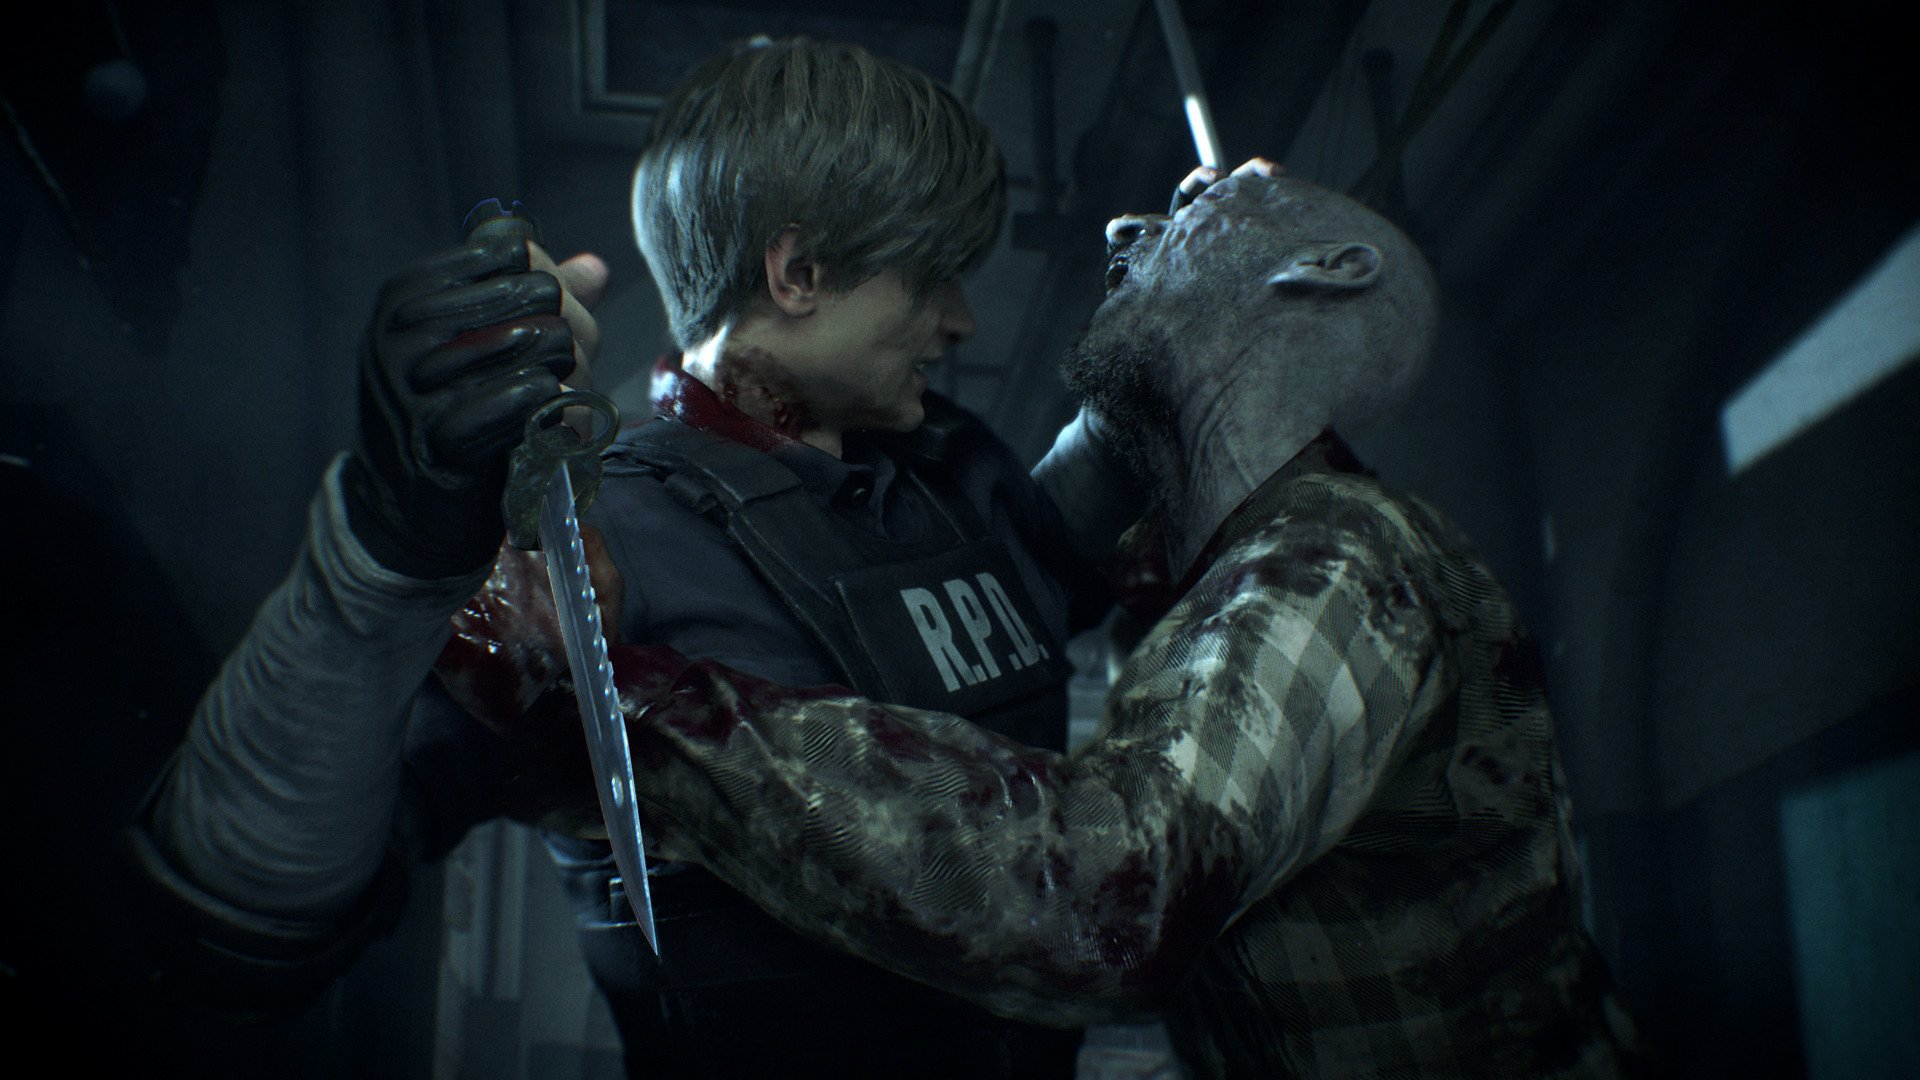 Review: Resident Evil 2 Brilliantly Crafts an Atmosphere of Tension